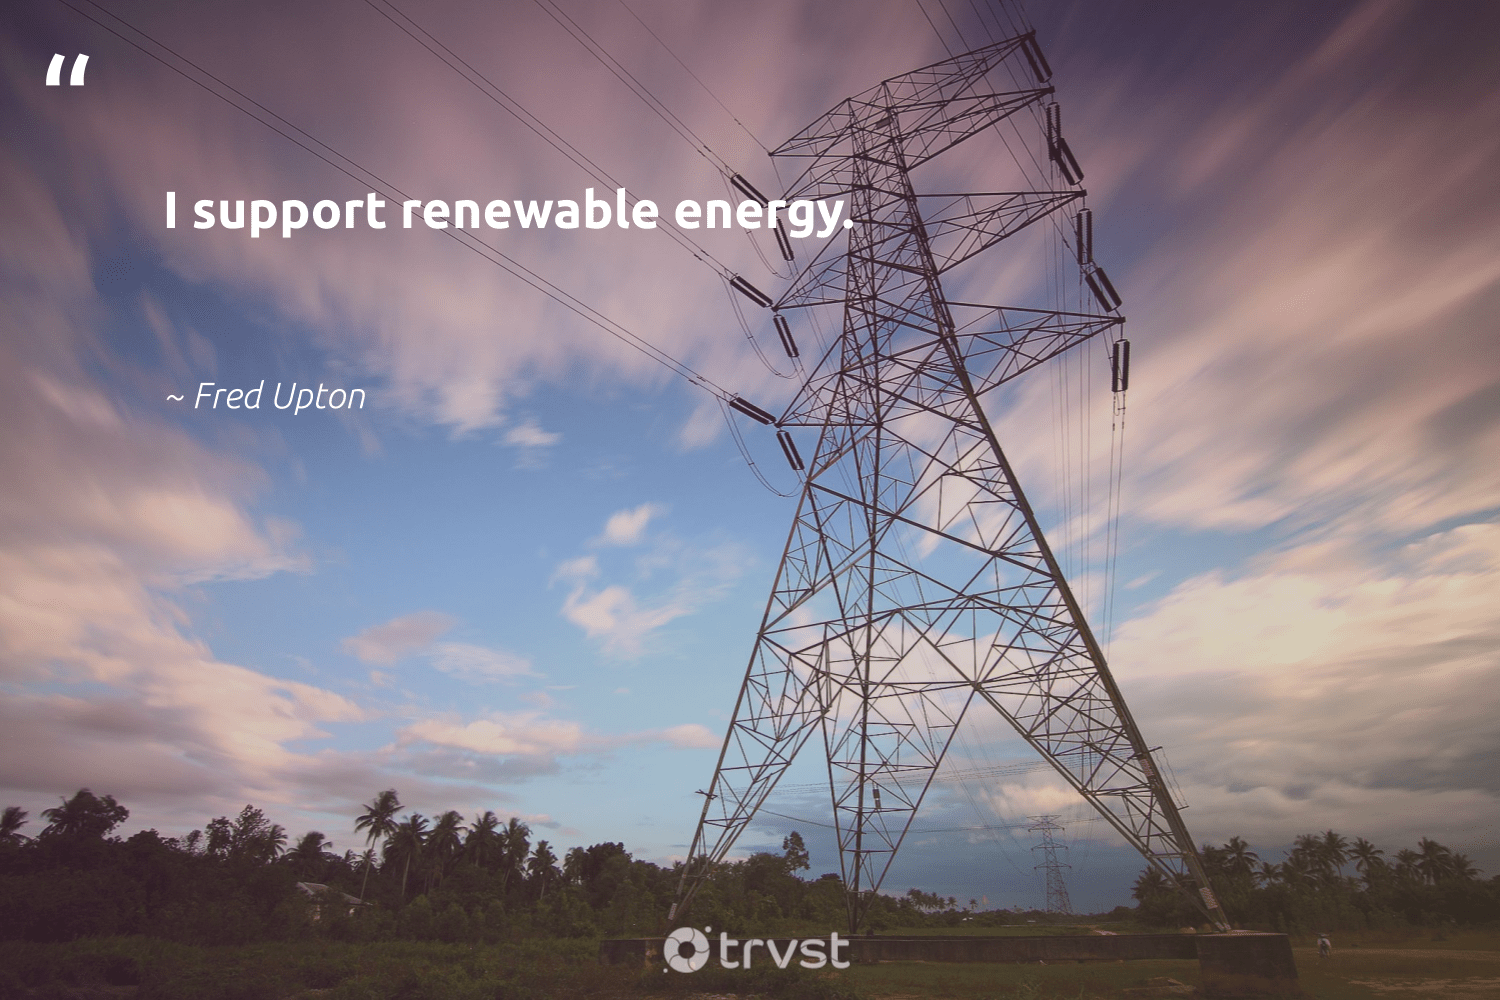 """""""I support renewable energy.""""  - Fred Upton #trvst #quotes #renewableenergy #energy #renewable #100percentrenewable #affordable #environment #carboncapture #socialimpact #100percentclean #switchfuelenergy"""